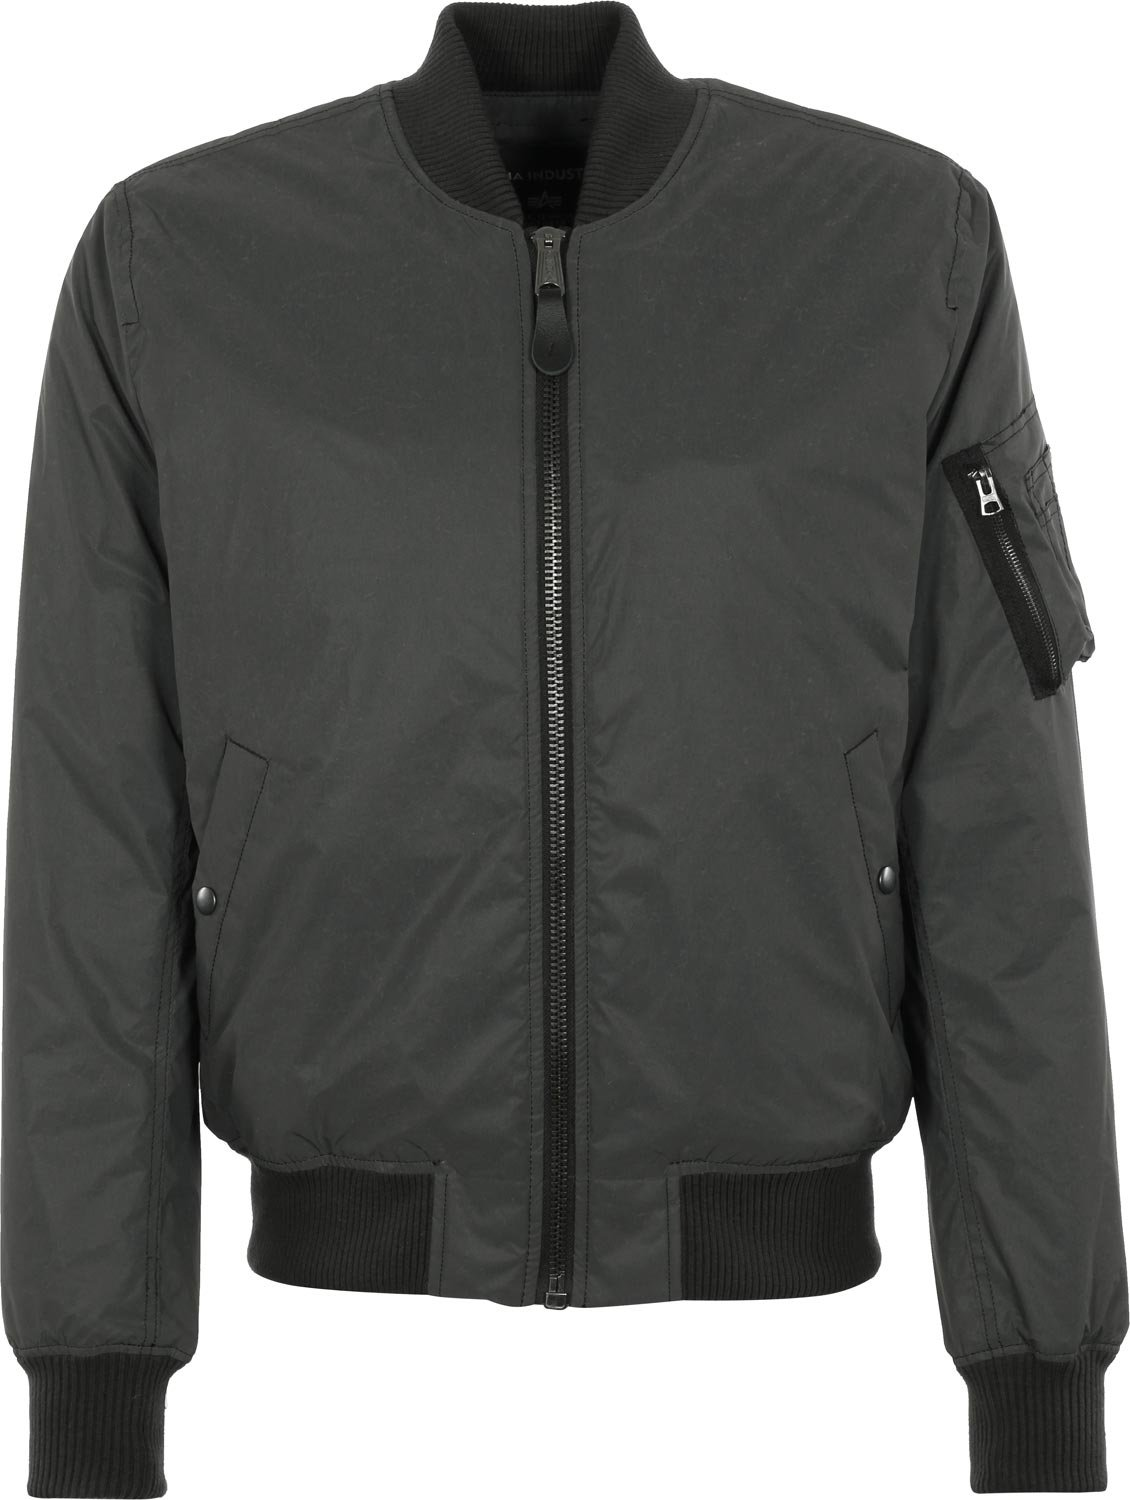 alpha industries MA-1 VF REFLECTIVE bestellen